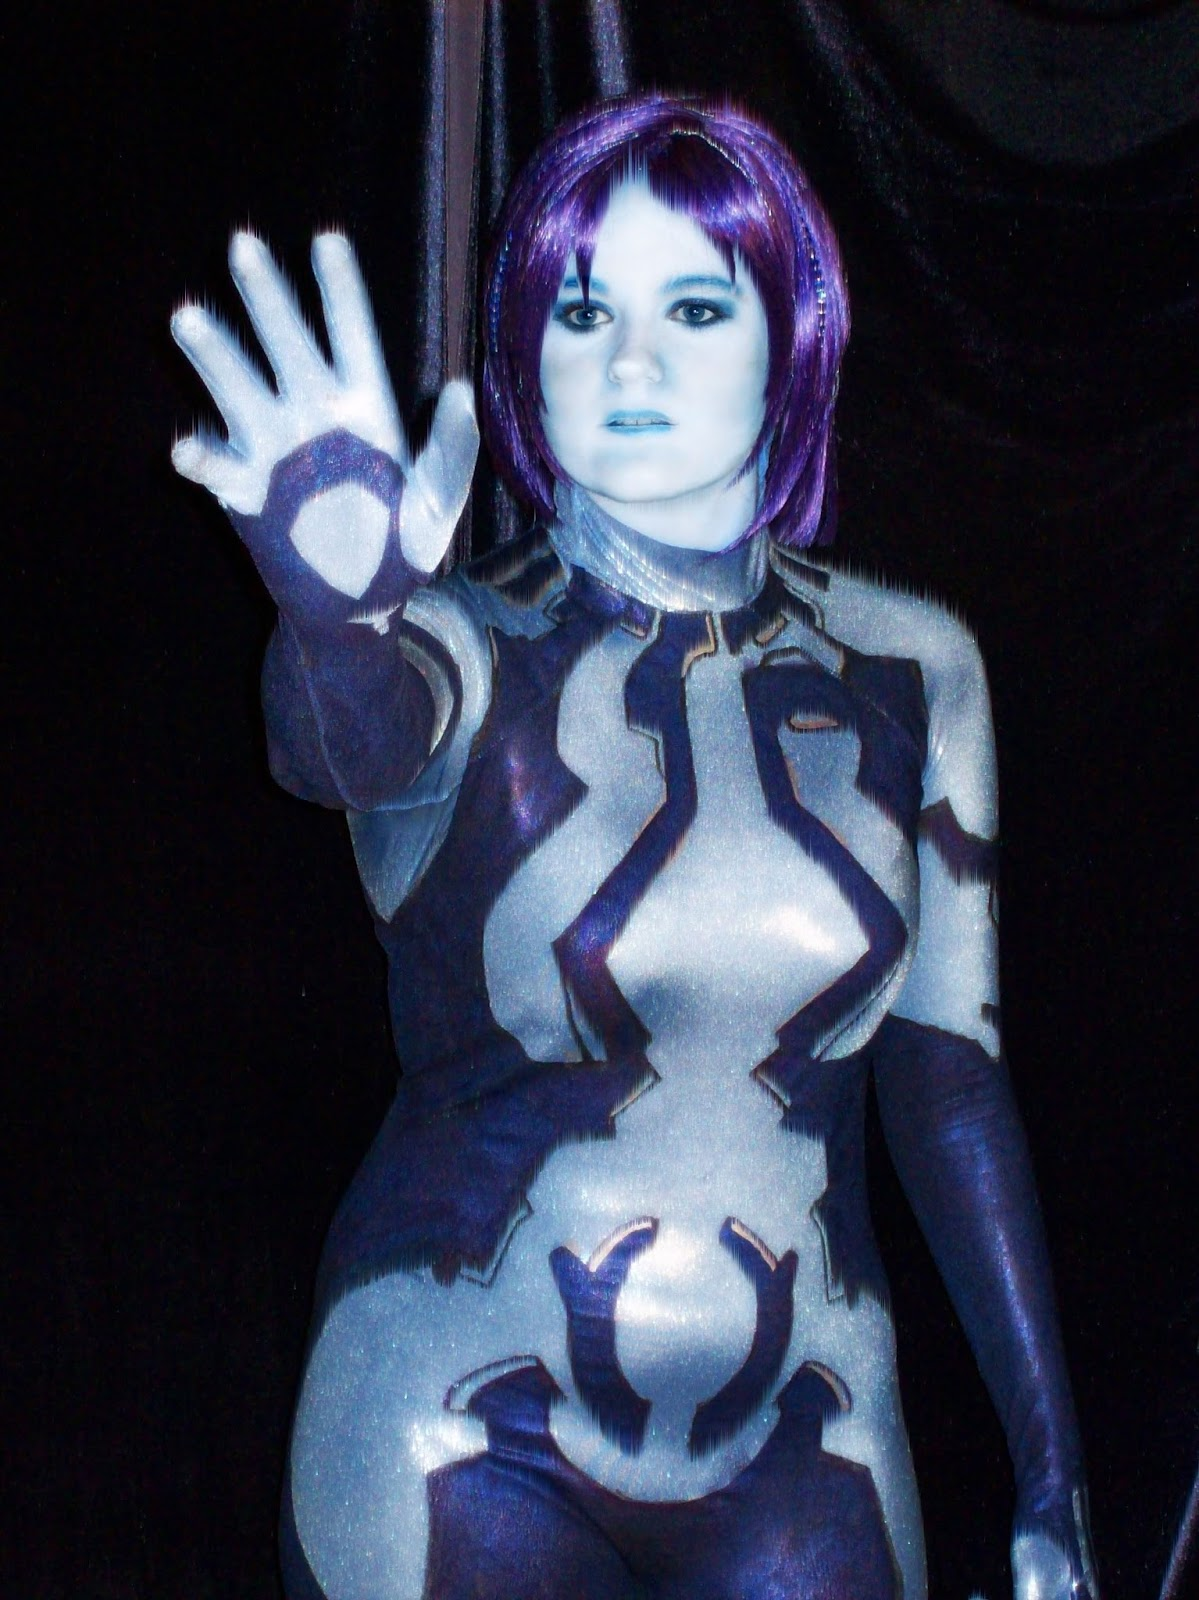 Hot cortana cosplay